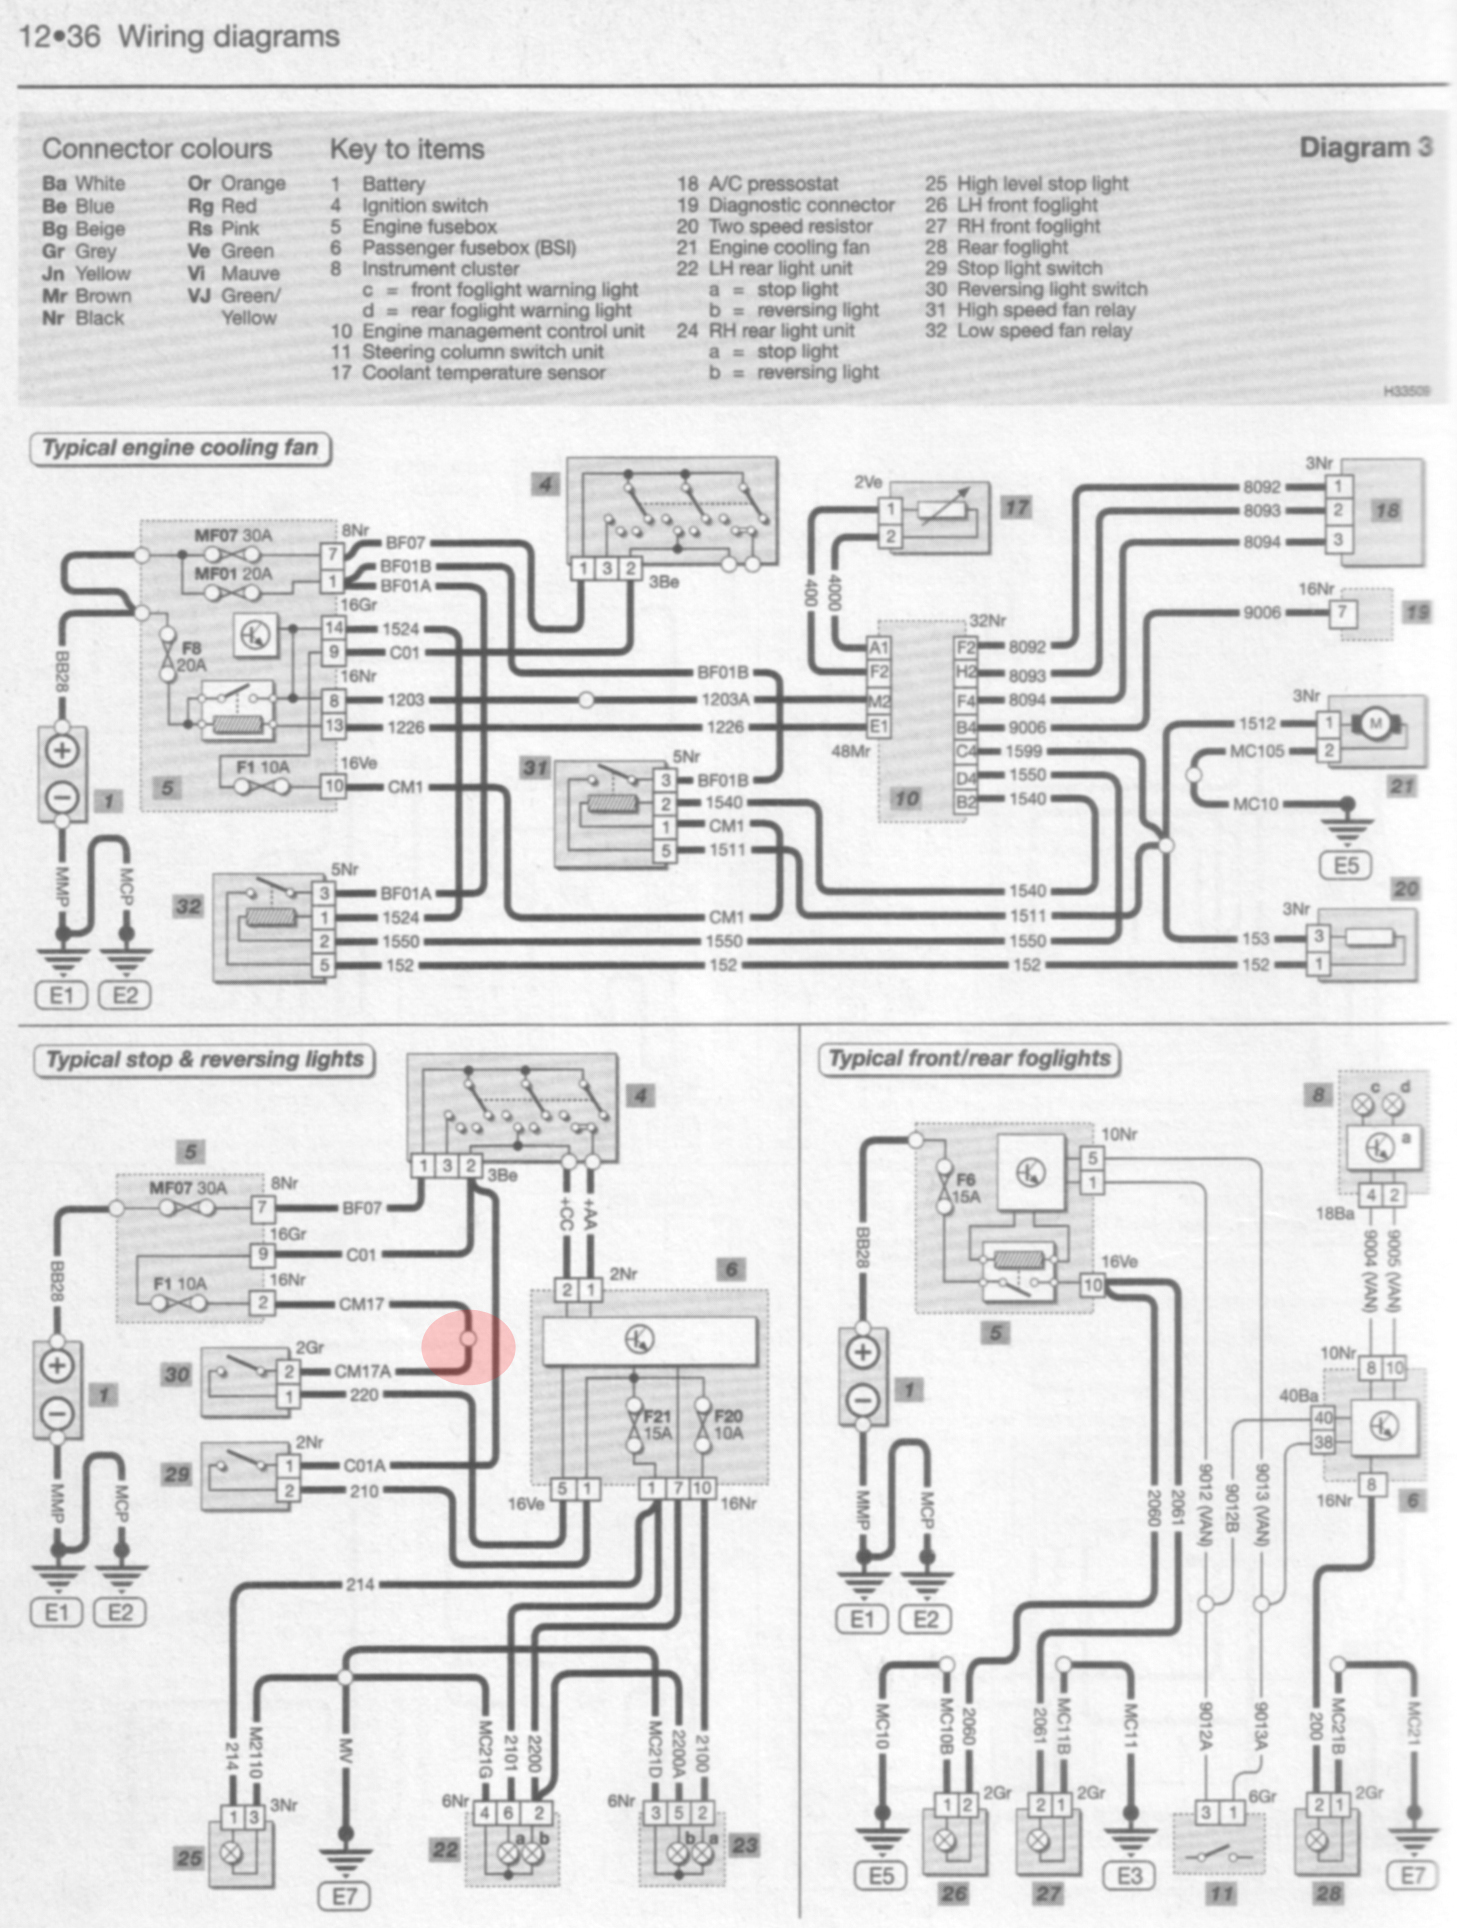 peugeot 208 wiring diagram wiring library peugeot 206 gti 206 gti reverse lights not working this one peugeot 208 wiring diagram